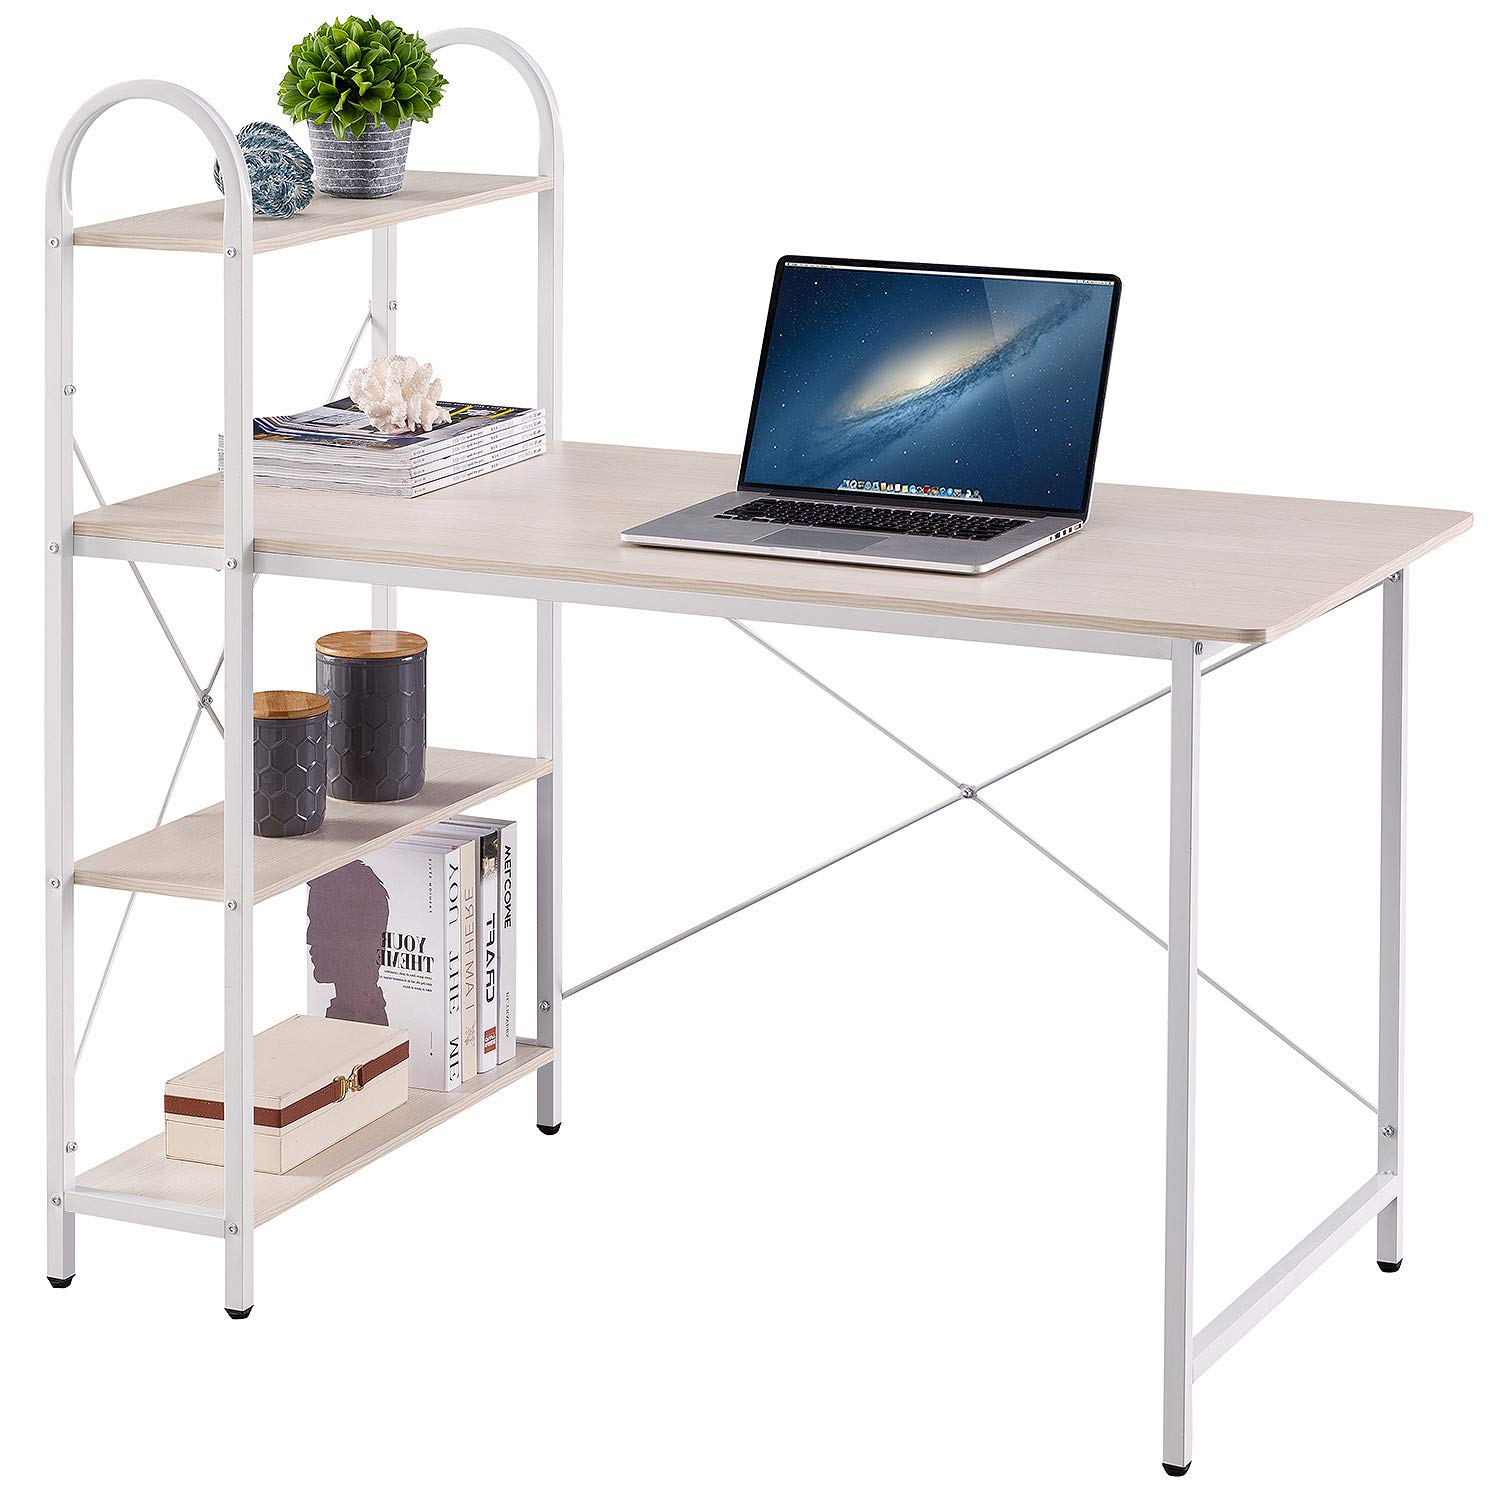 HOME BI Study Desk, Home Office Study Desk with Shelf, Wood Work-Station PC Laptop Table, White by HOME BI